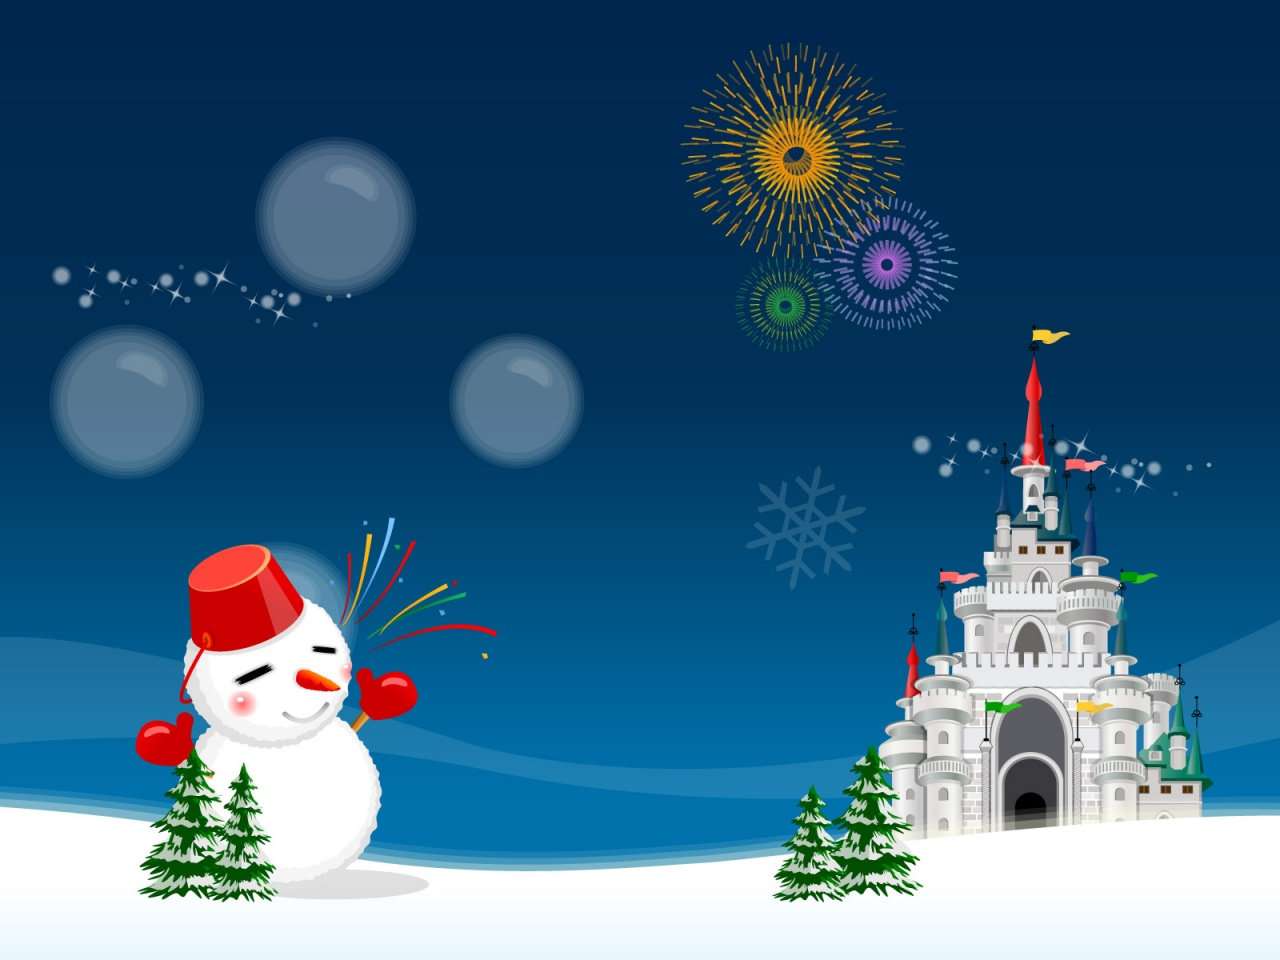 Christmas Night, Snowman, Fireworks